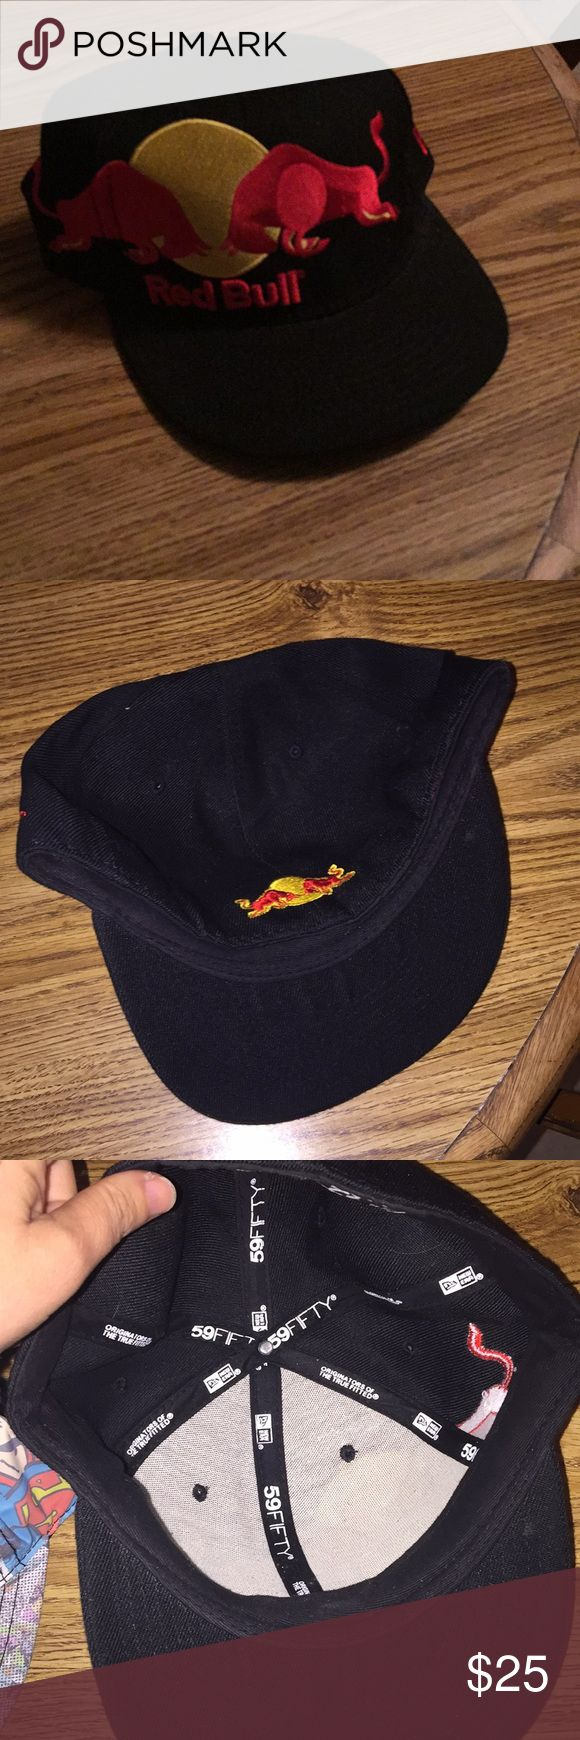 "Red Bull Fitted Hat Fitted hat - worn once after a race, Excellent-like new - red bull logo - size is 7 3/8"" or 58.7 cm - 79% acrylic, 30% wool New Era Accessories Hats"